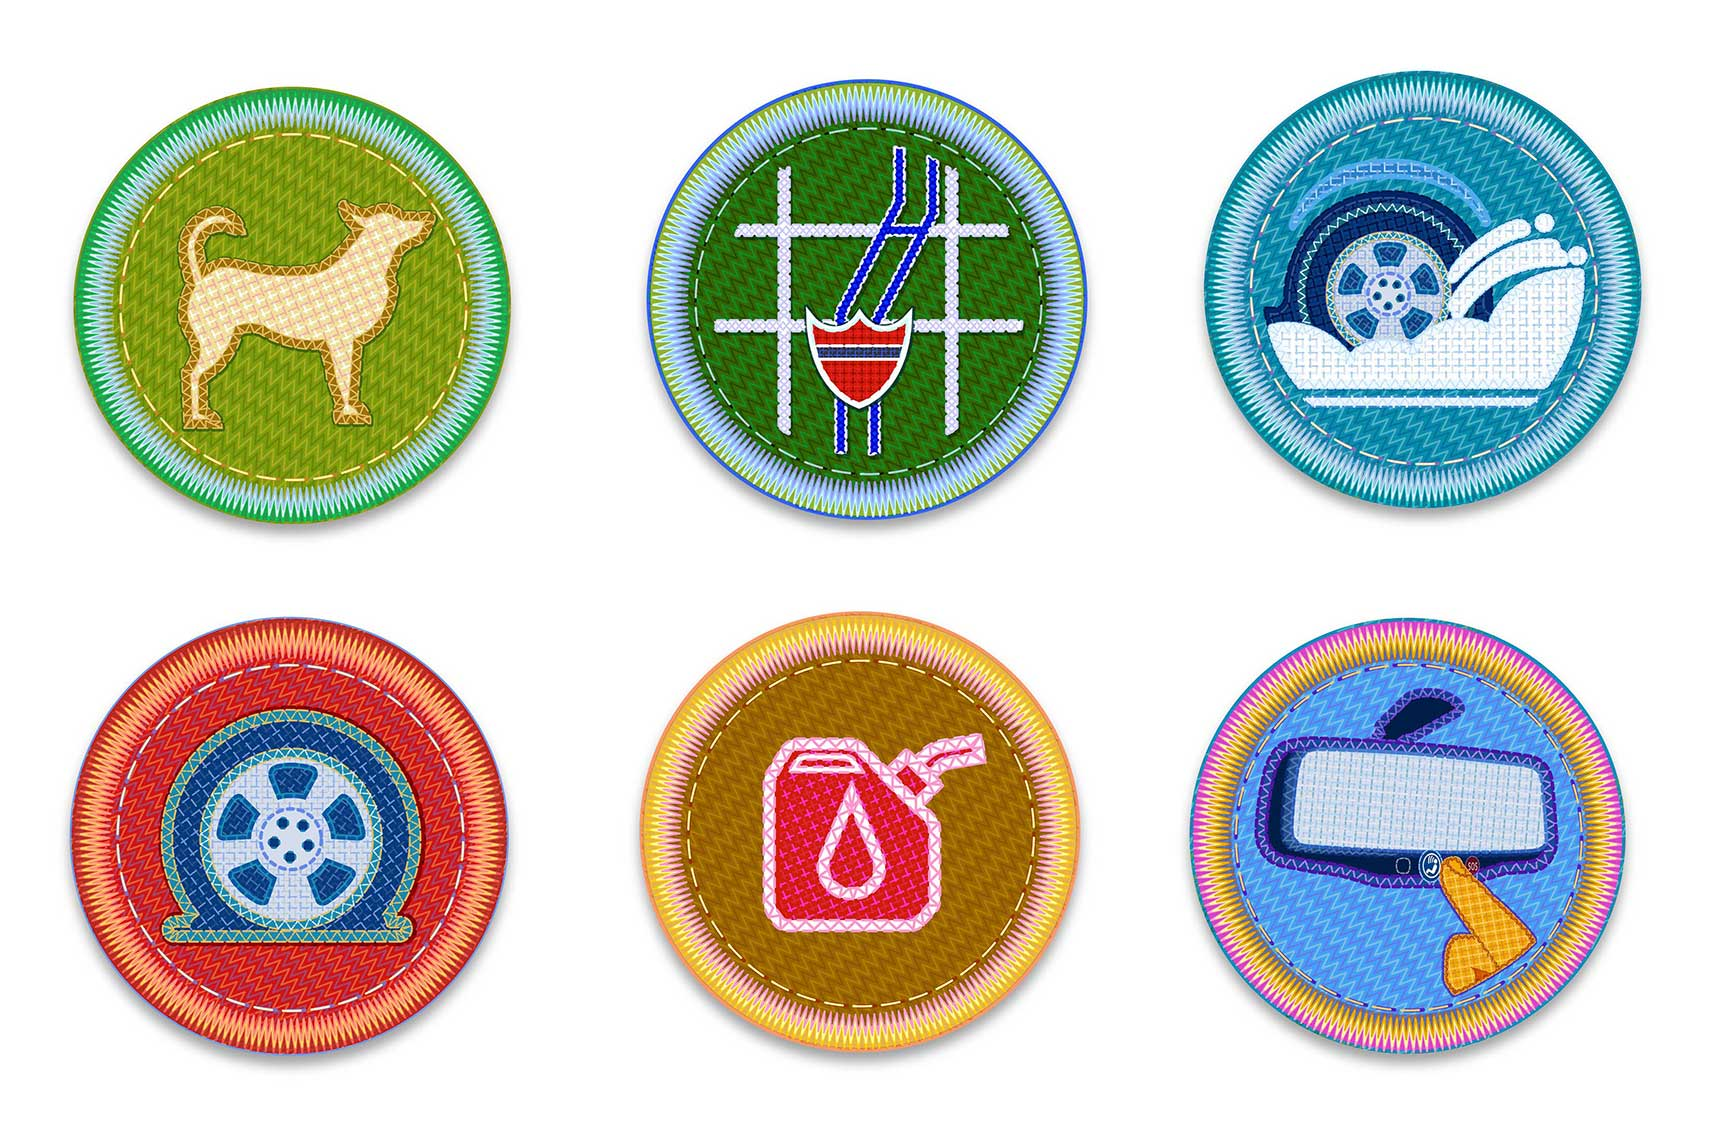 Dog-Map-Snow-Flat Tire-Low Gas-Rear View Mirror-Icon Patches